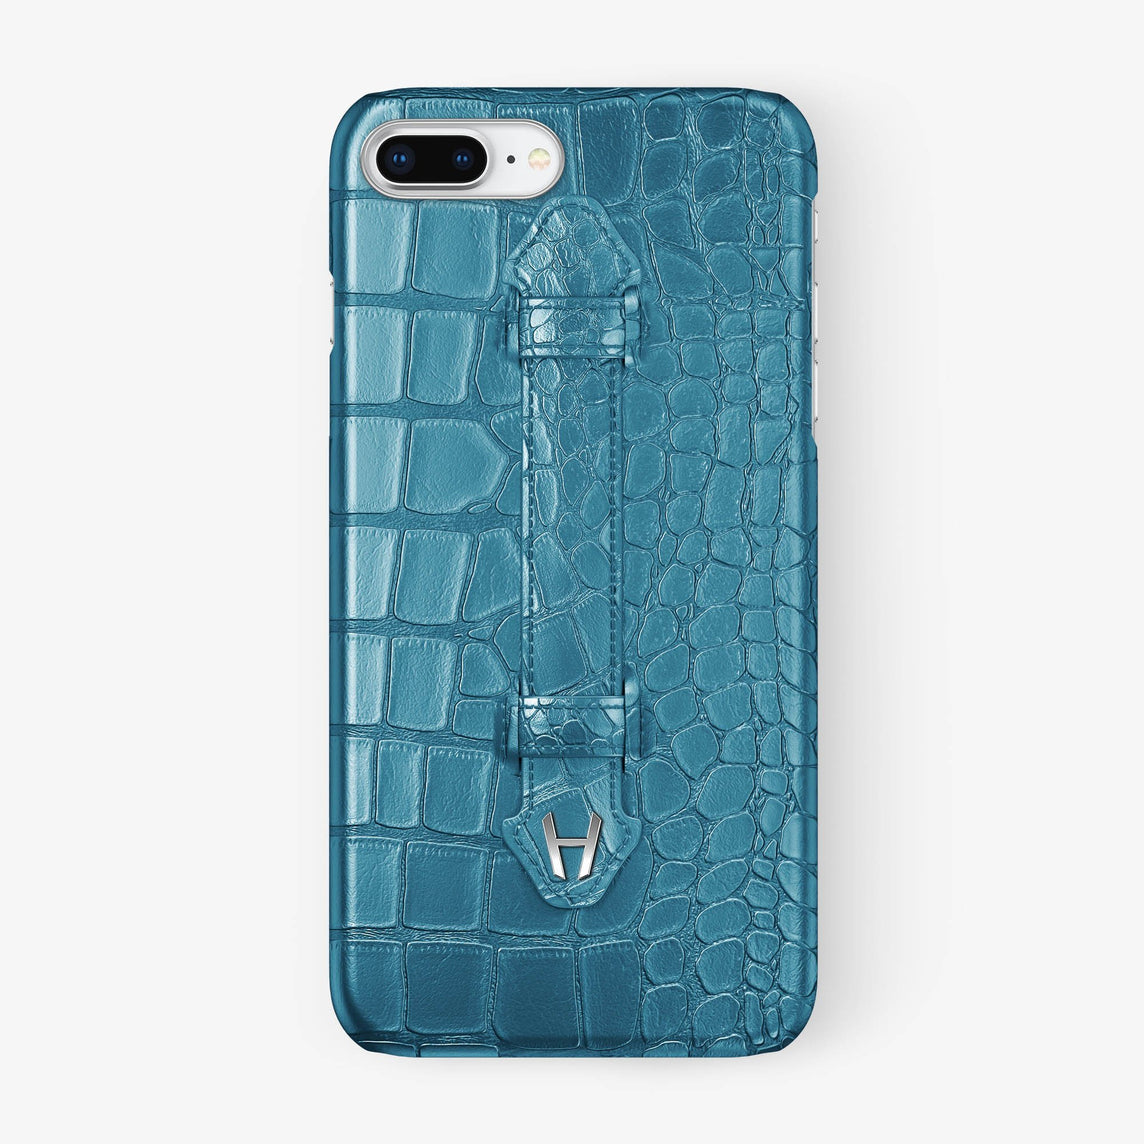 Alligator Finger Case iPhone 7/8 Plus | Teal - Stainless Steel